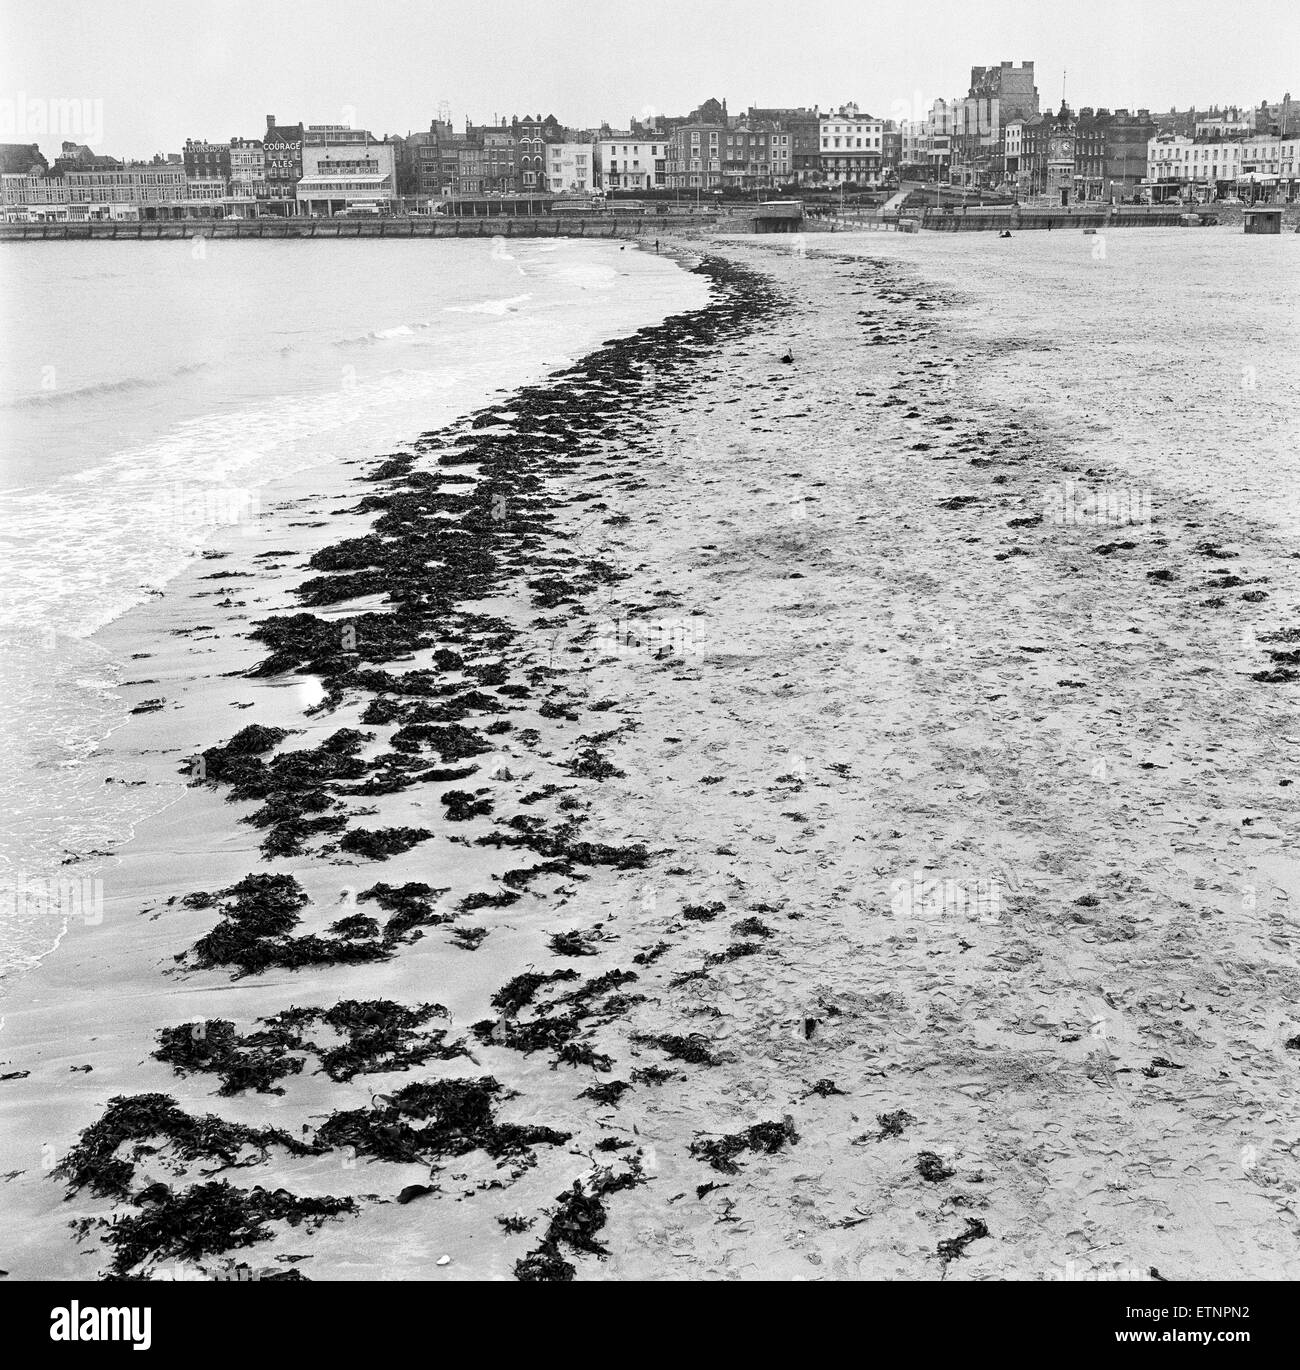 Scenes in Margate, Kent, during Good Friday. A deserted beach. 27th March 1964. - Stock Image